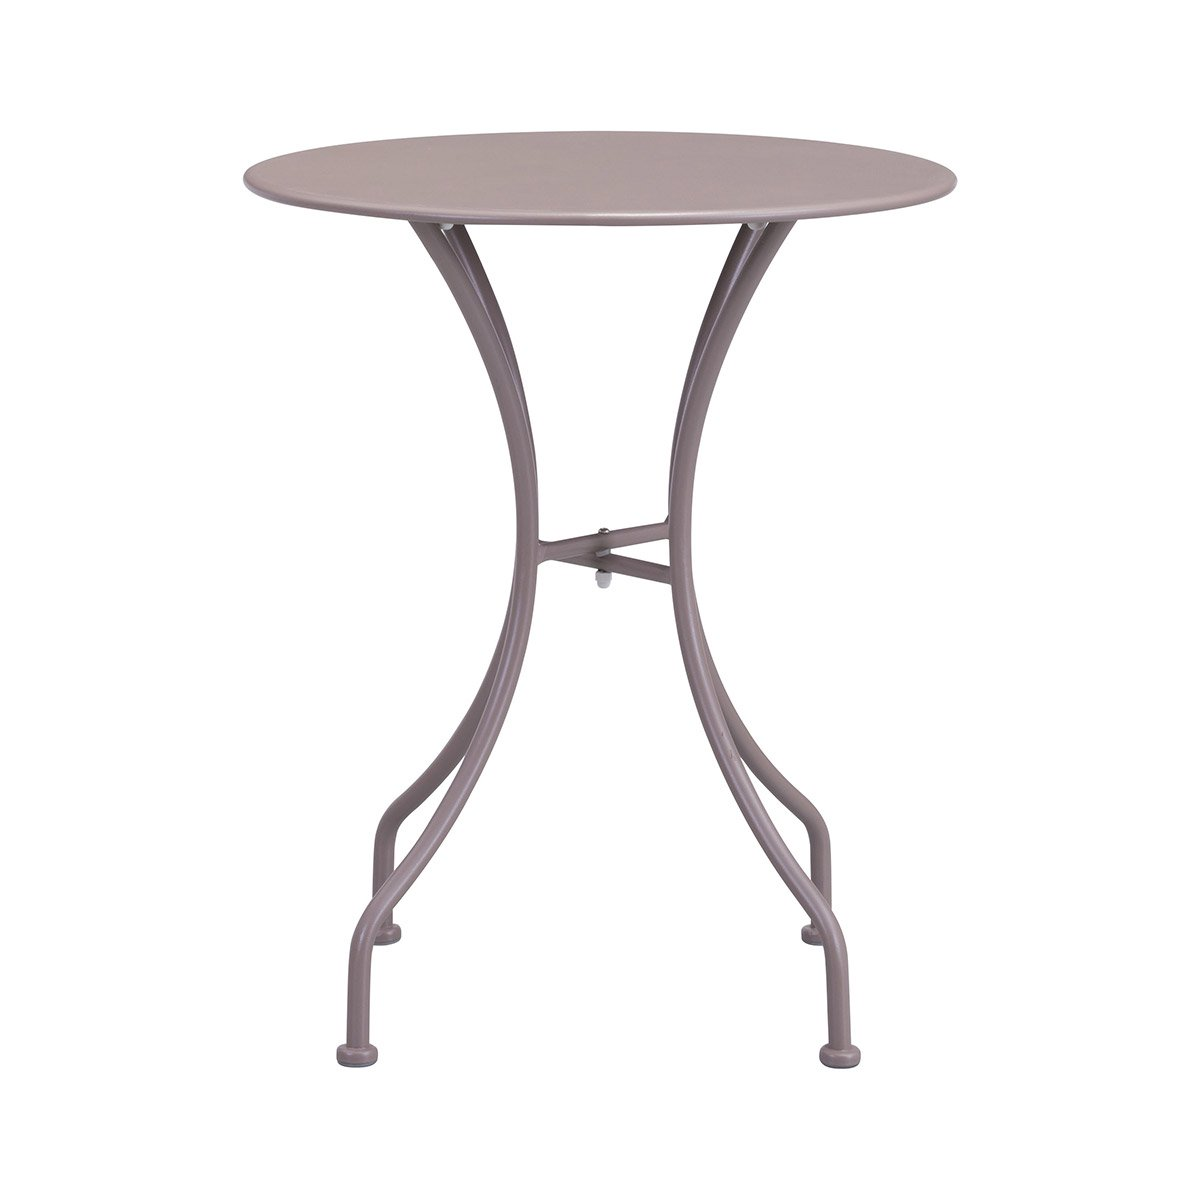 Zuo Oz Patio Dining Round Table In Taupe Boost Home